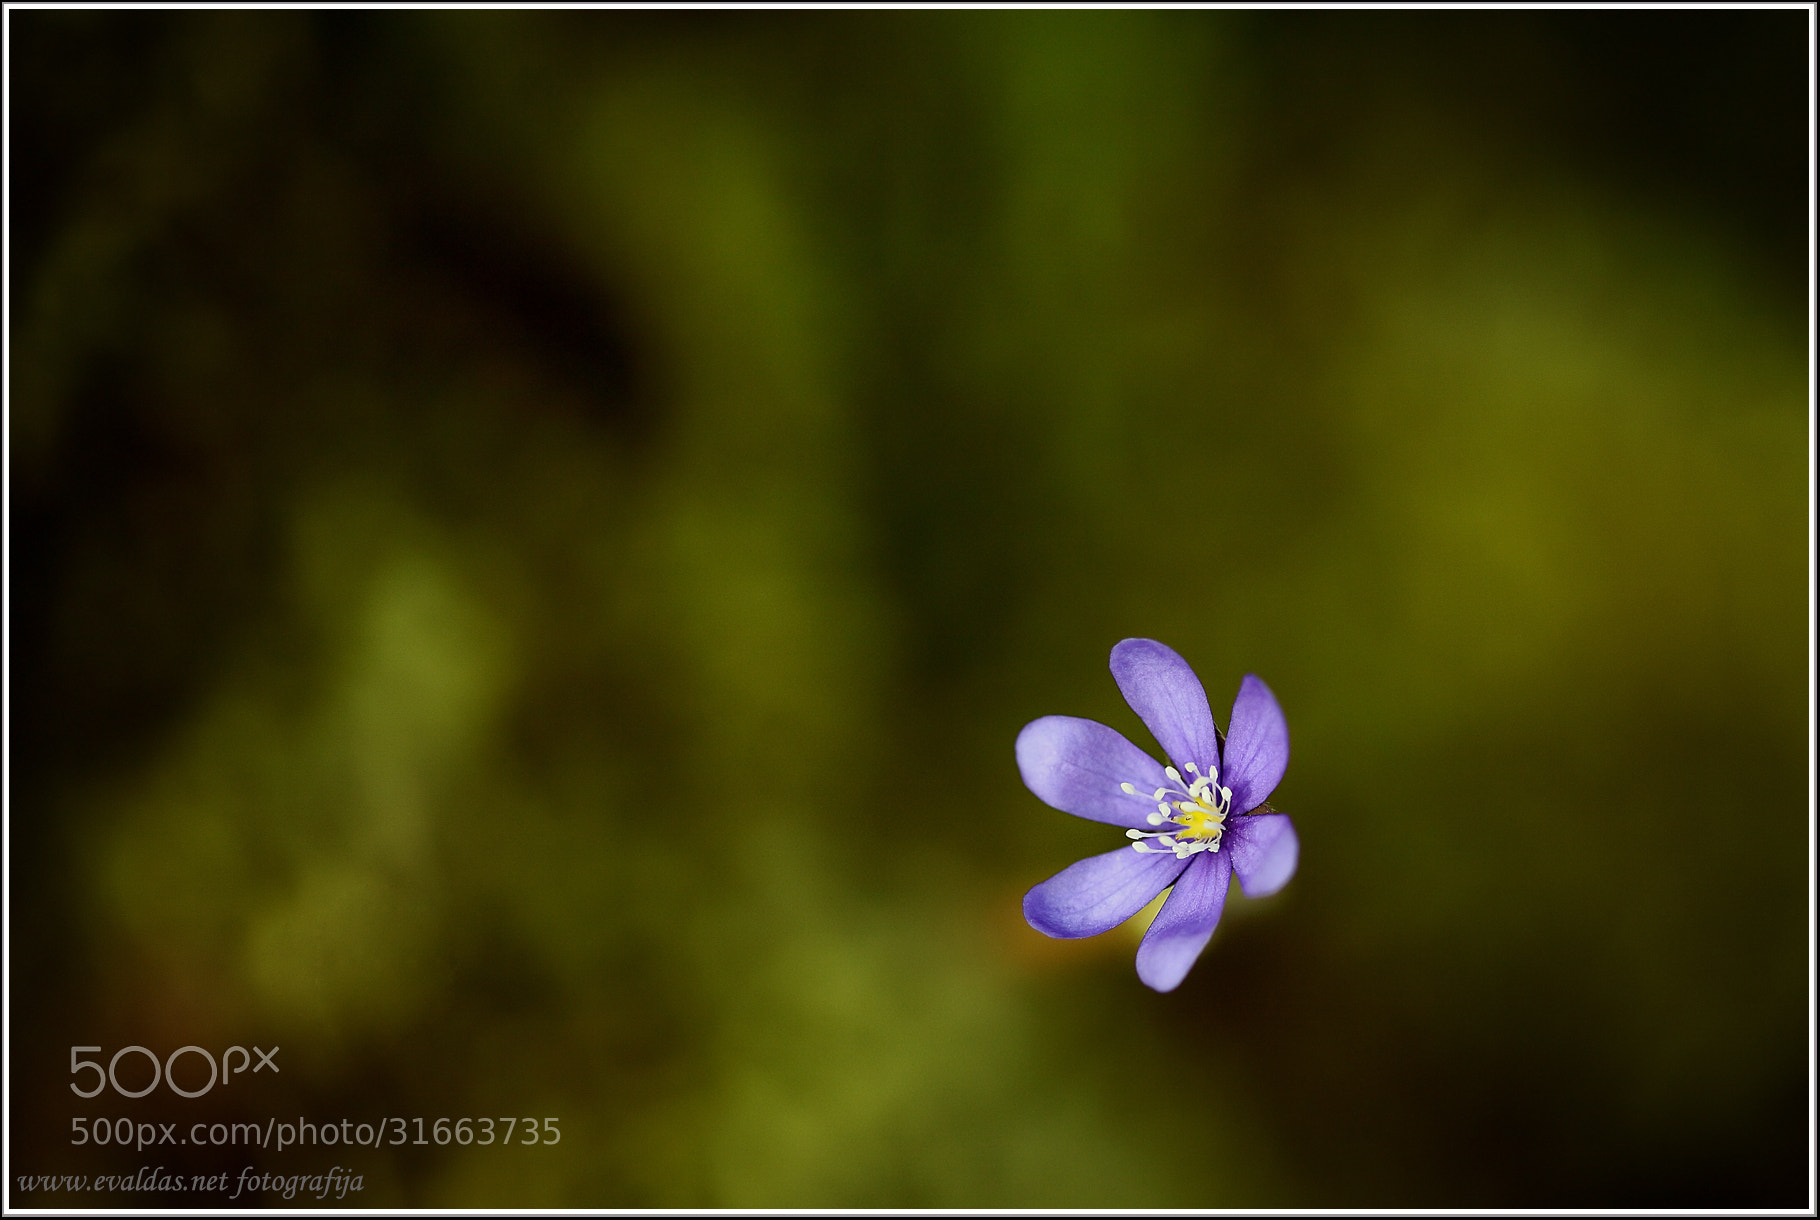 Photograph Violet by Evaldas Steinbergas on 500px